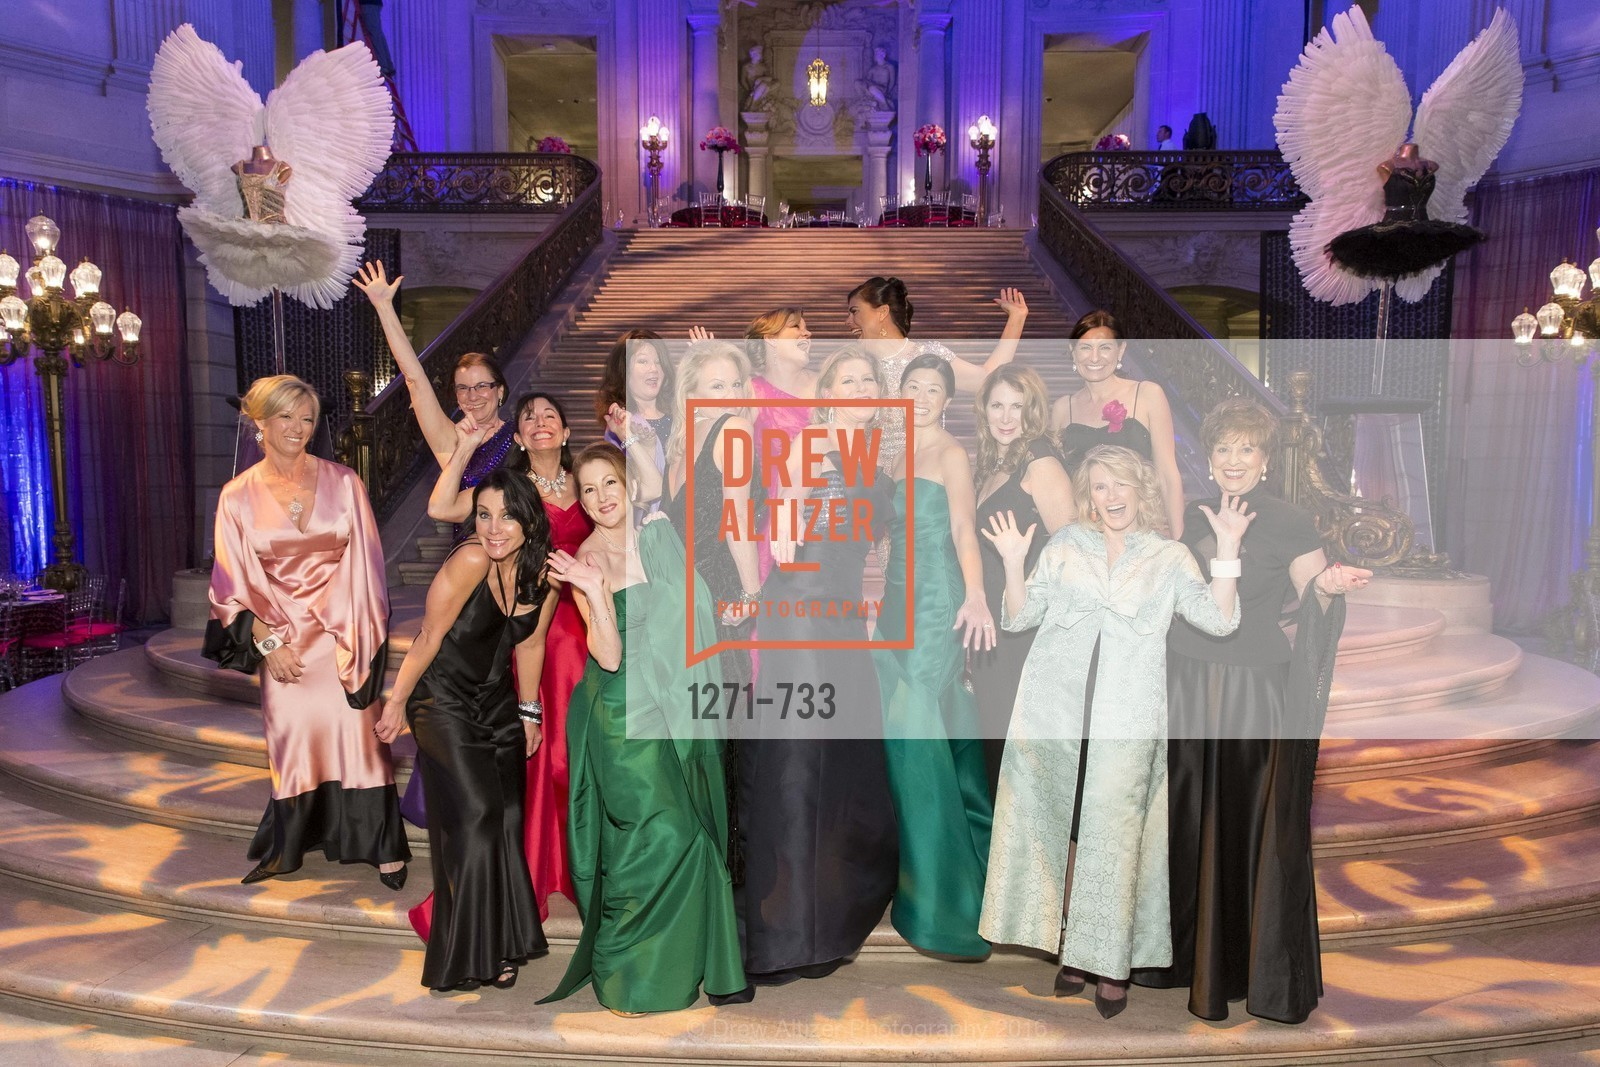 Rhonda Mahendroo, Carolyn Koenig, Deborah Taylor, Donna Bachle, Ave Seltsam, Catherine Bergstrom, Claire Kostic, Rene Rodman, Jennifer Brandenburg, Christine Leong Connors, Trecia Knapp, Patricia Ferrin Loucks, Marie Hurabiell, Suzanne Thornton, San Francisco Ballet 2016 Opening Night Gala, San Francisco City Hall. 1 Dr Carlton B Goodlett Pl, January 21st, 2016,Drew Altizer, Drew Altizer Photography, full-service agency, private events, San Francisco photographer, photographer california